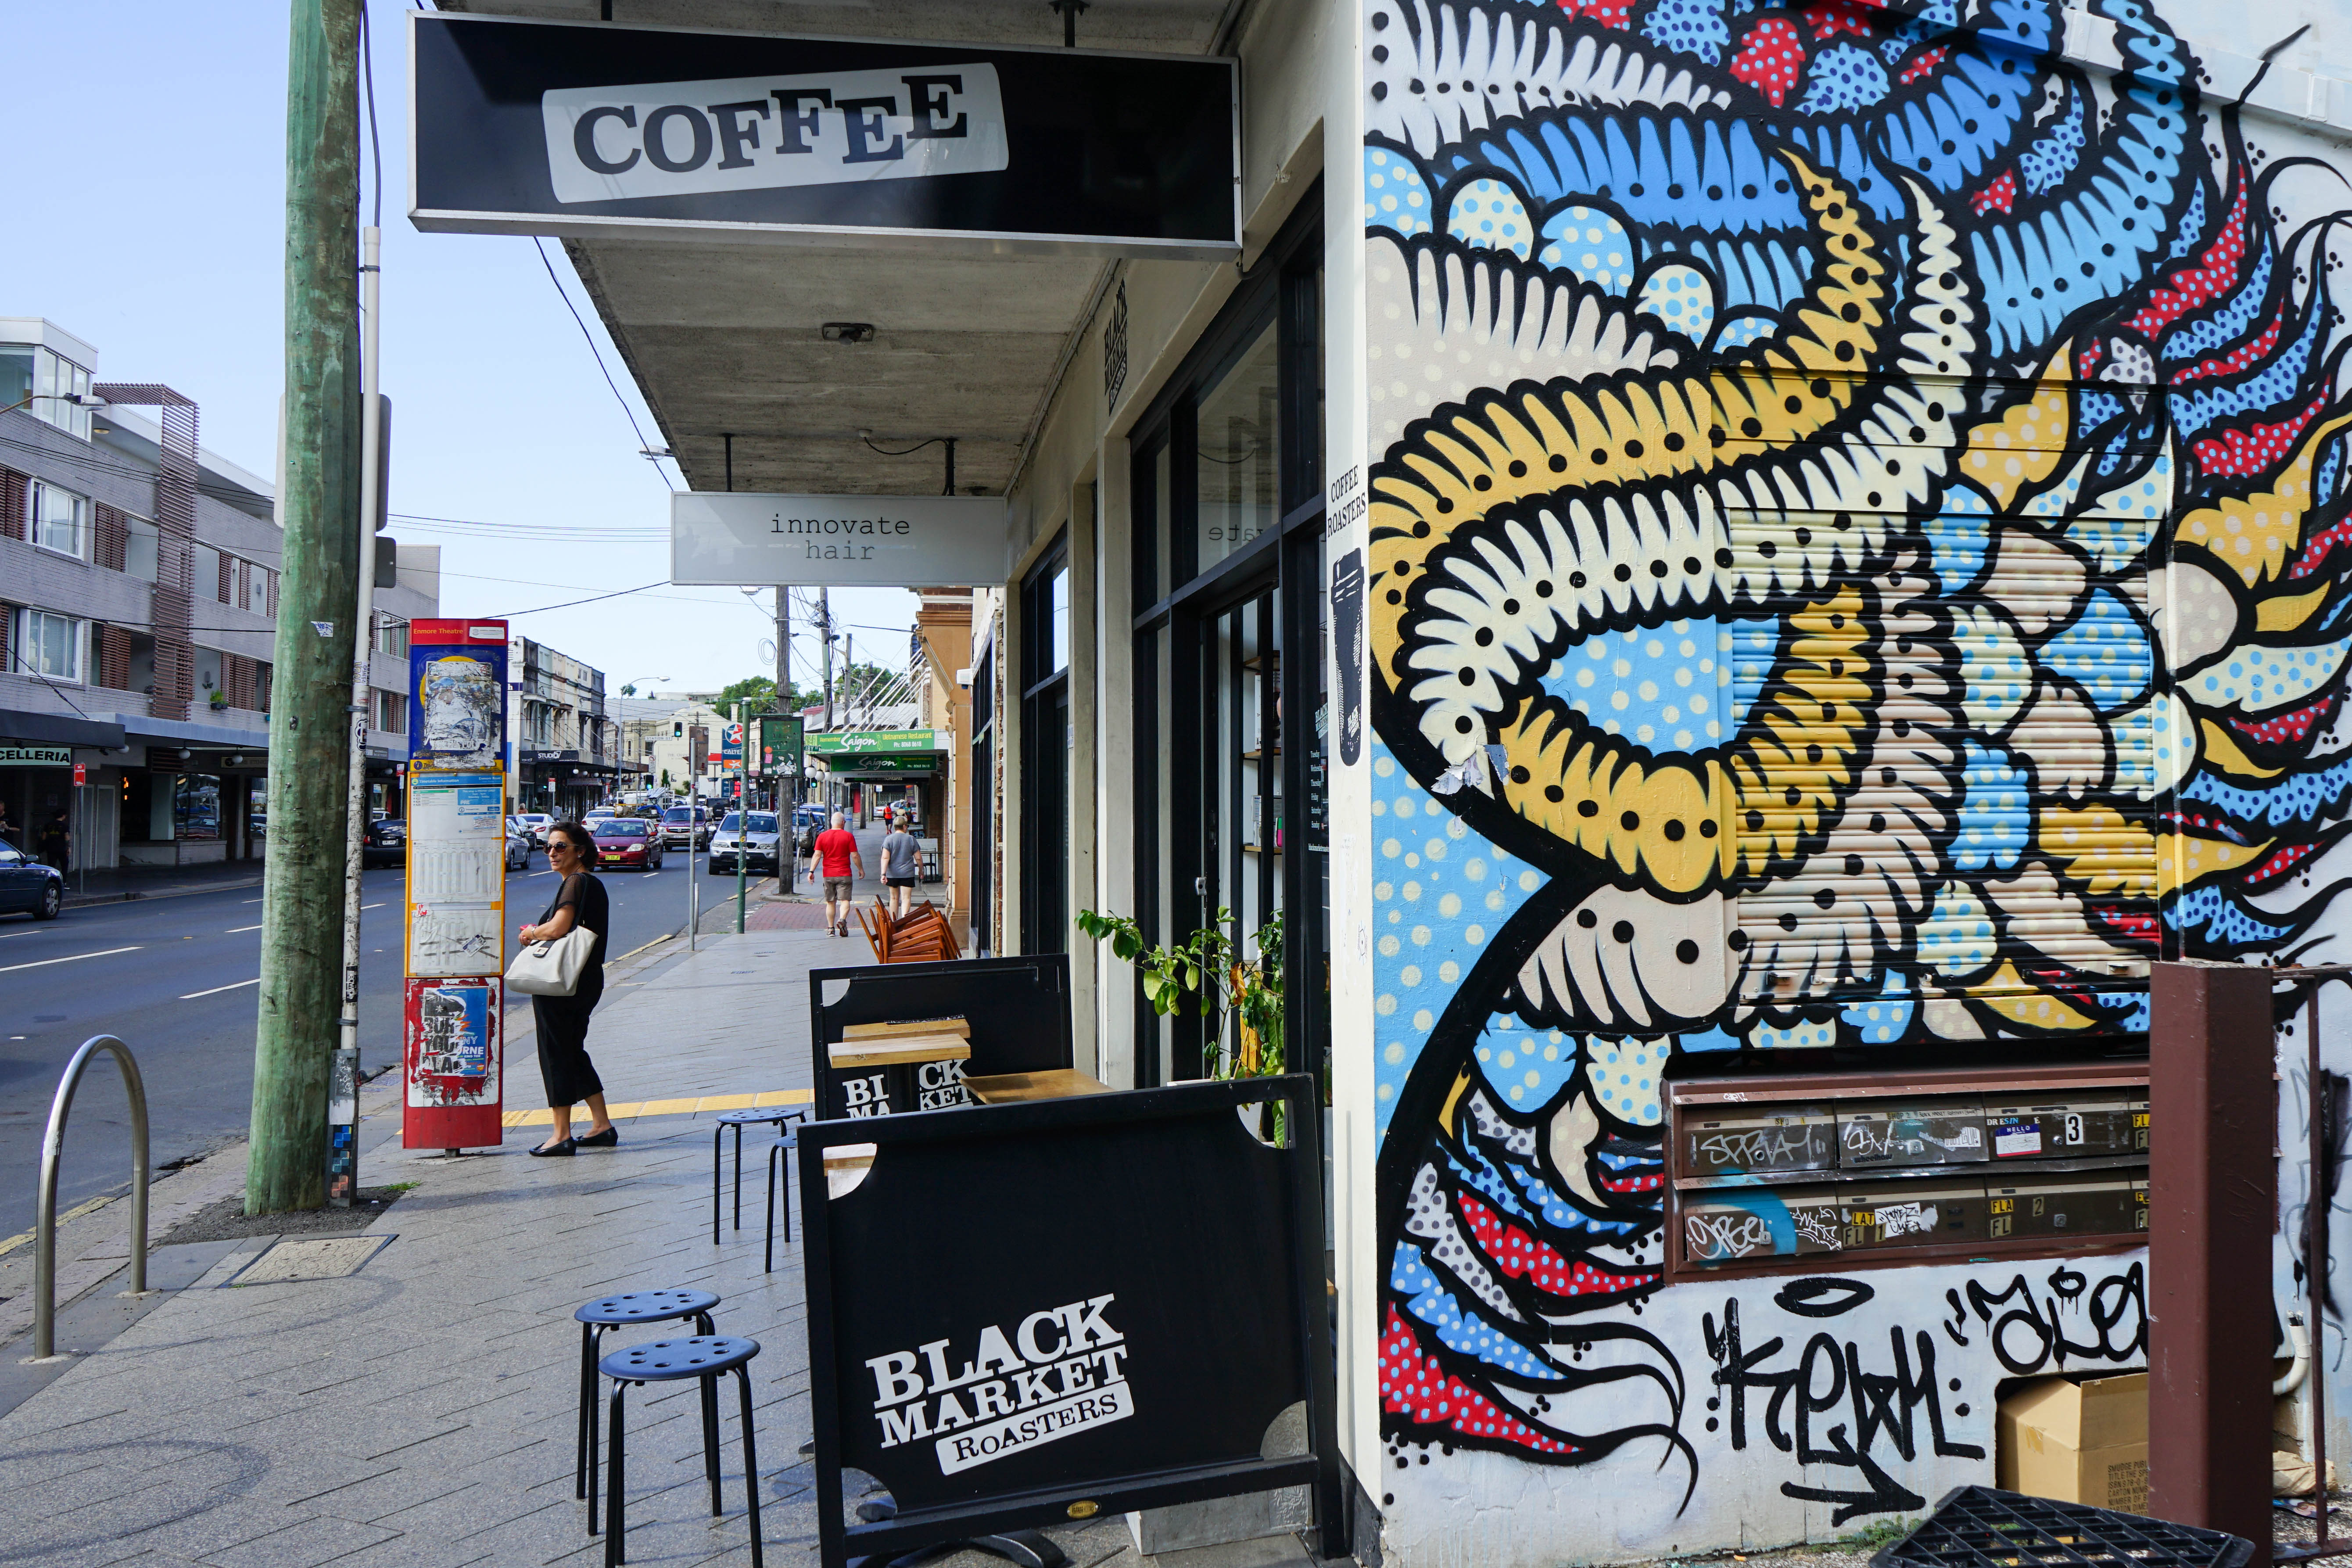 Stunning Espresso bar near Enmore Theatre for Sale - Very Rare Site - Apply Now